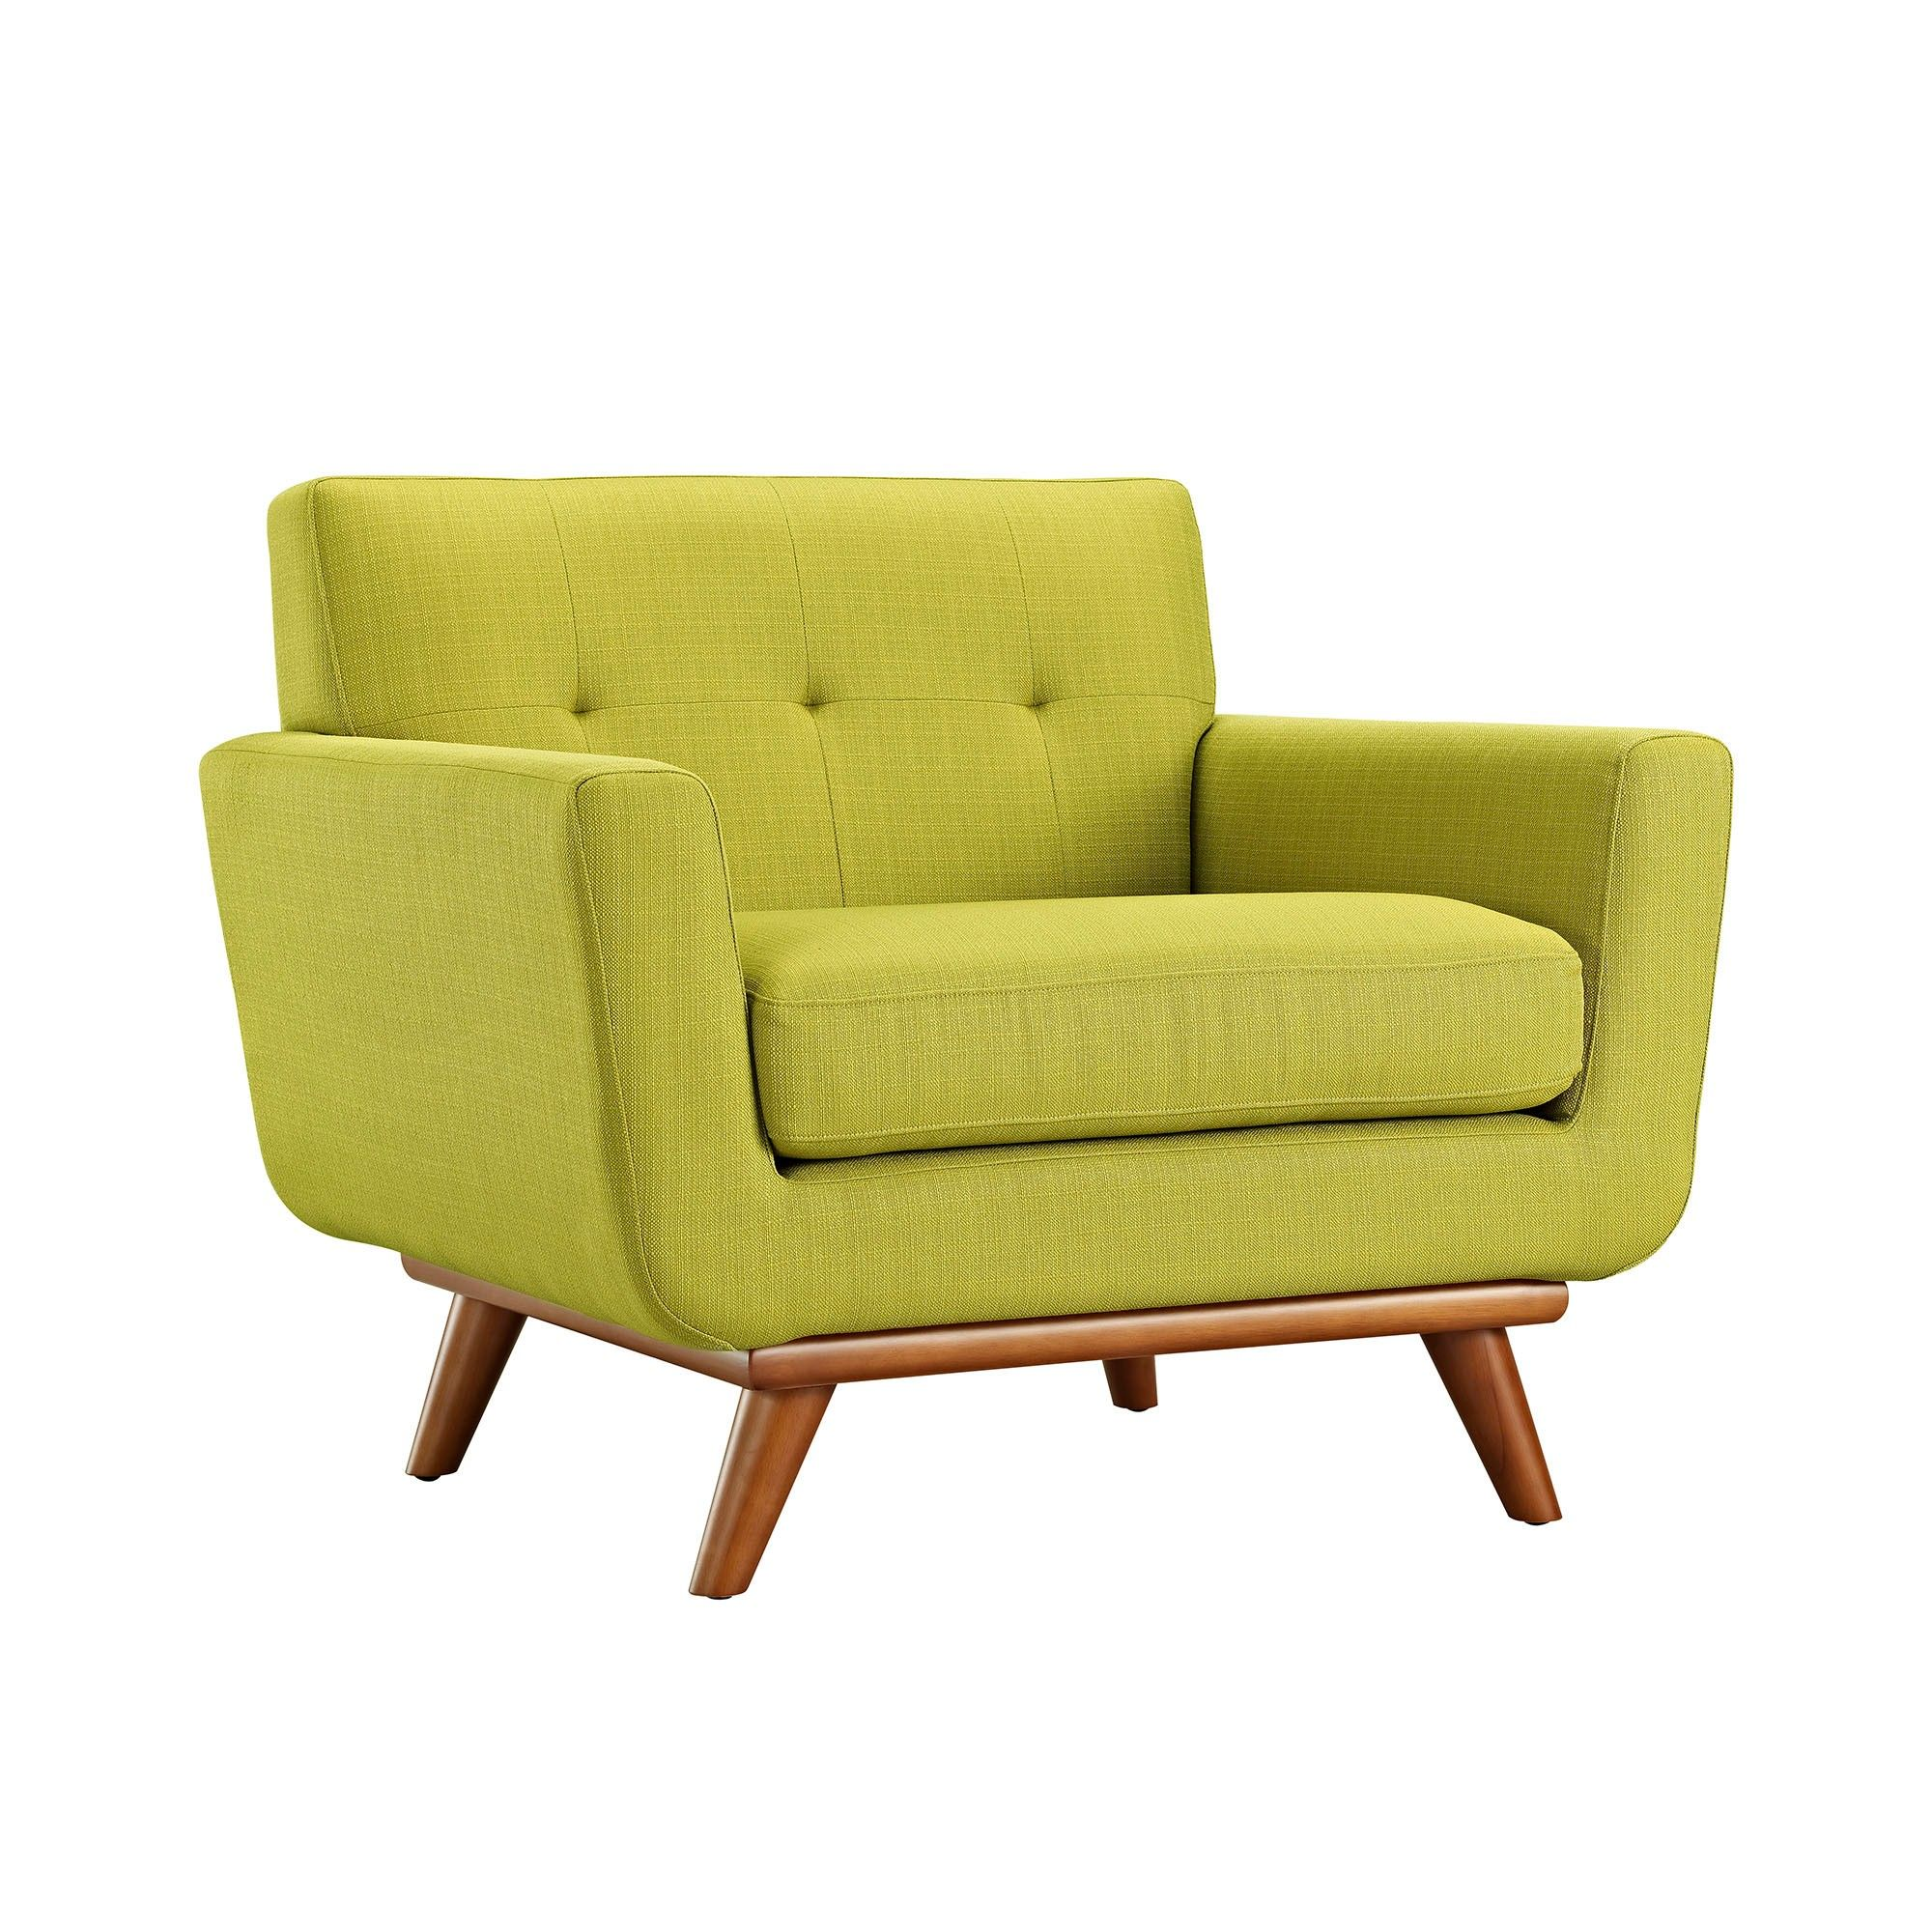 Engage upholstered armchair wheatgrass green modway